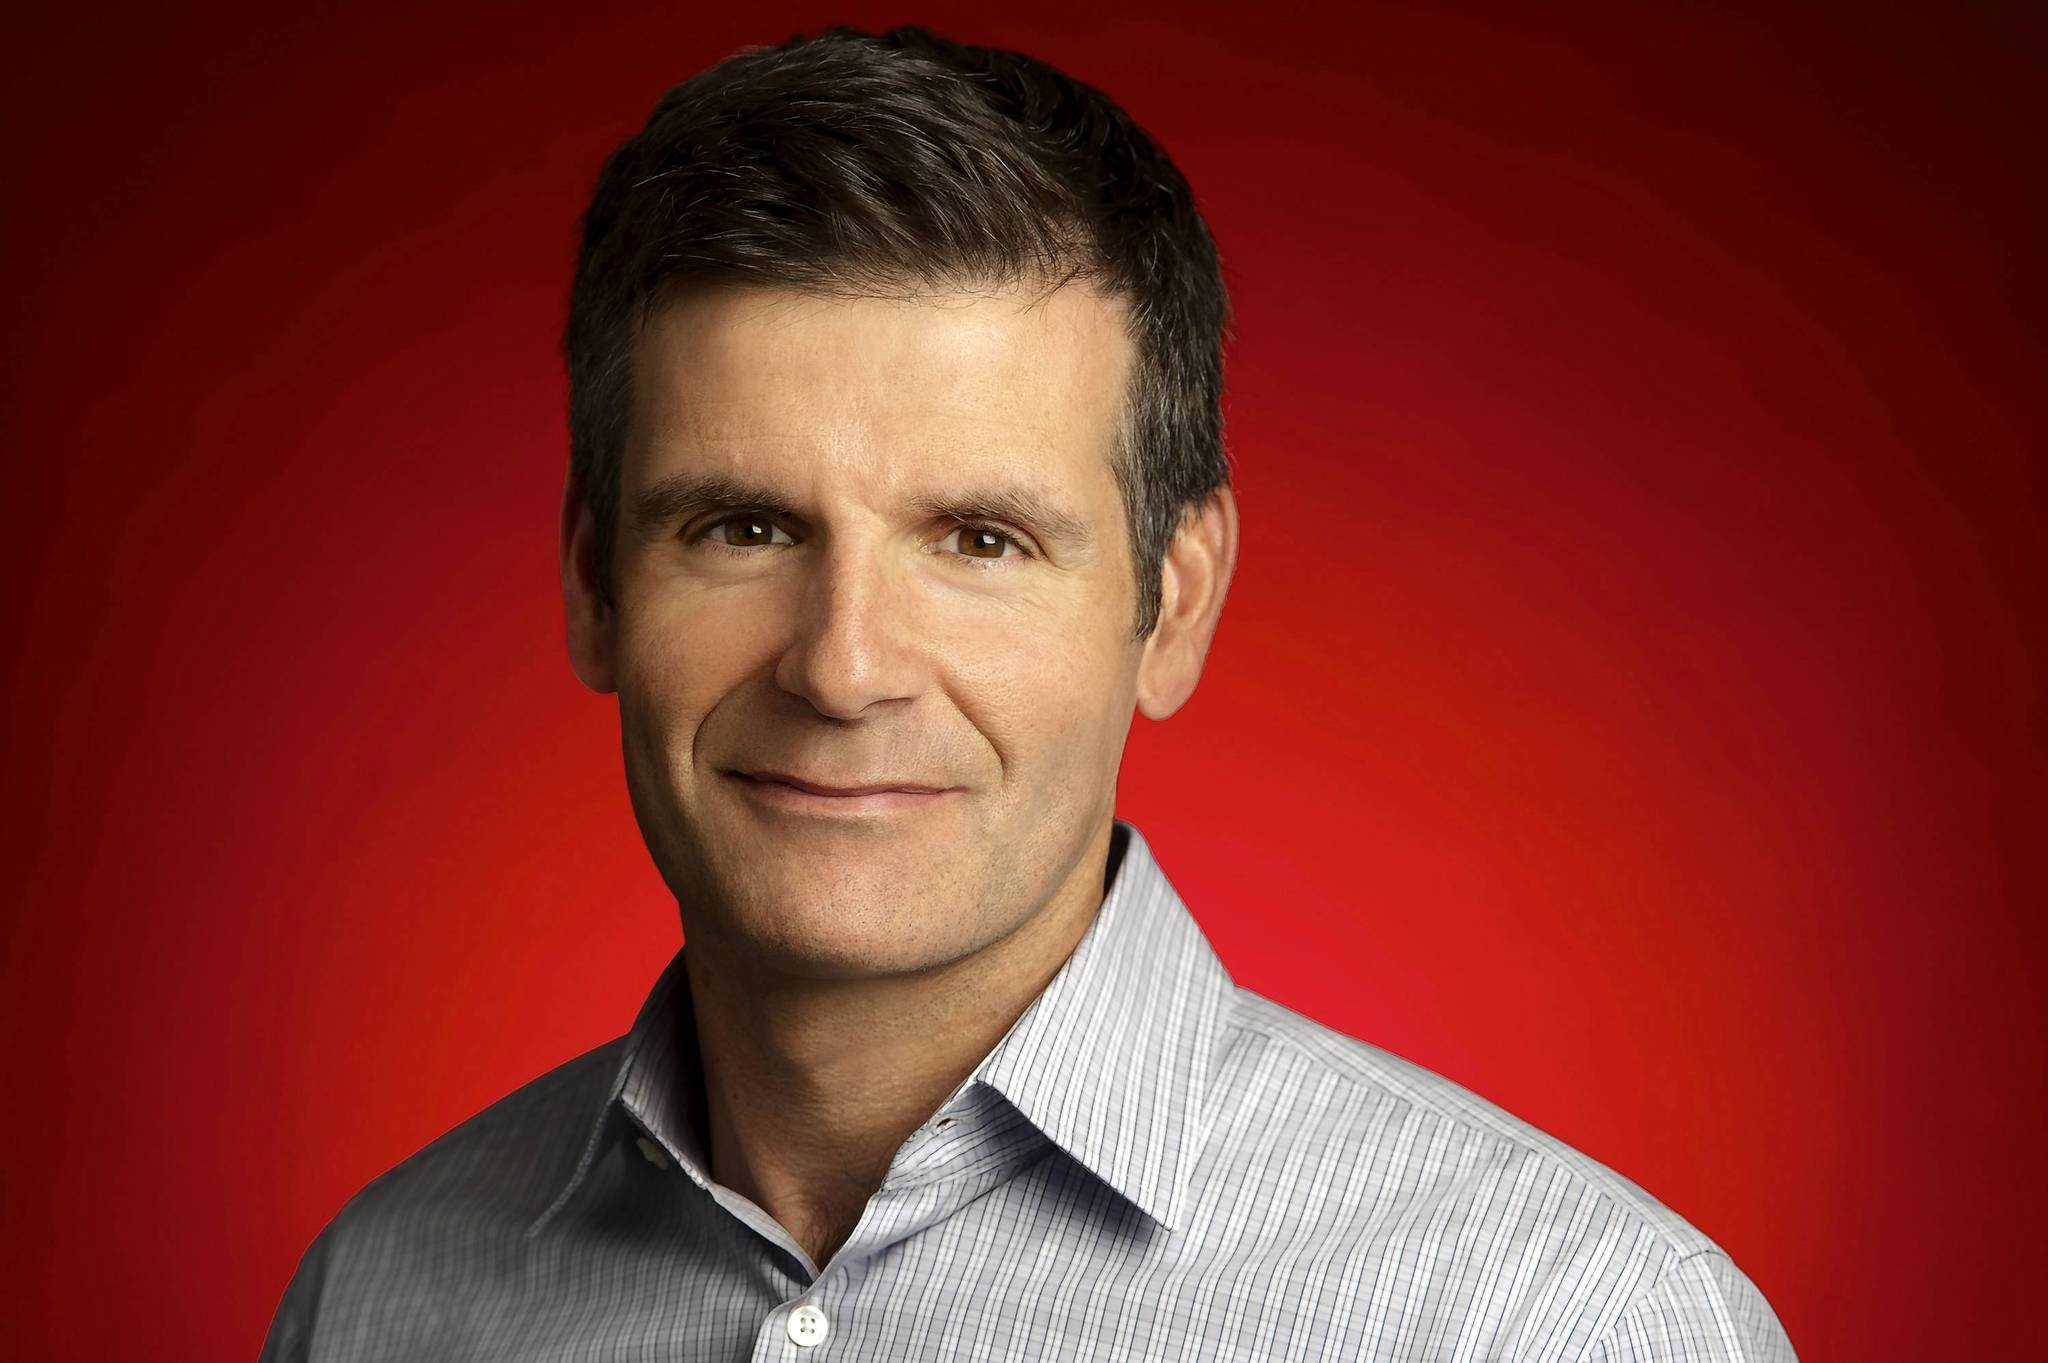 Dennis Woodside, former CEO of Motorola Mobility, is joining Dropbox as its new chief operating officer.